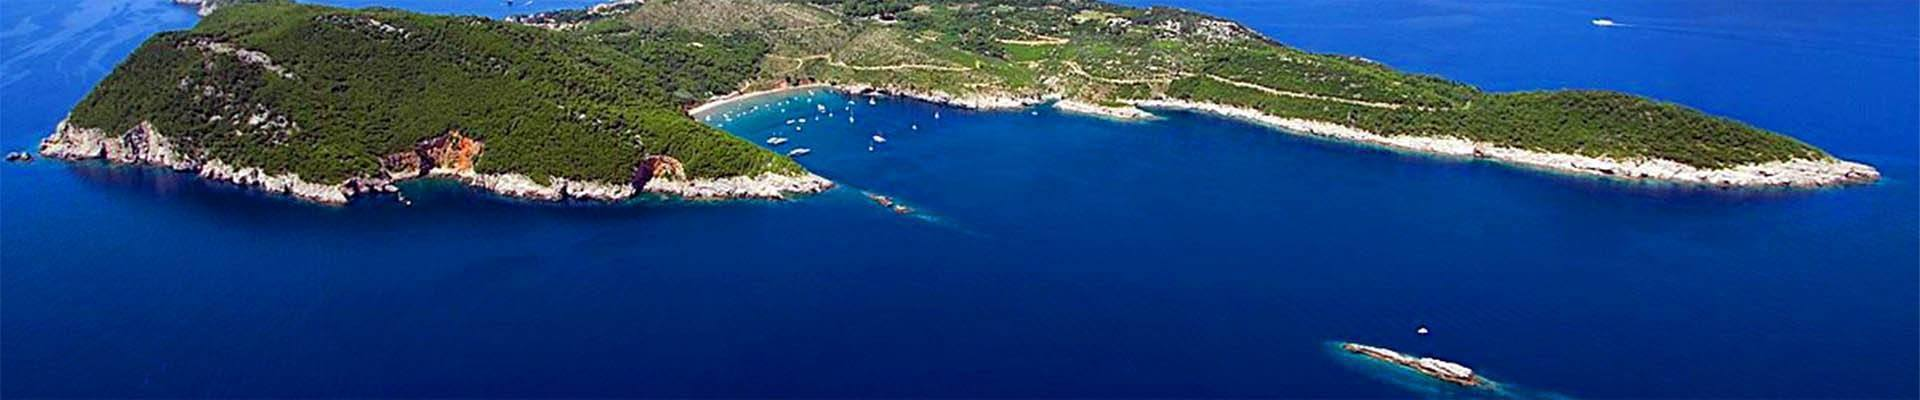 Elaphite islands boat tour from Dubrovnik